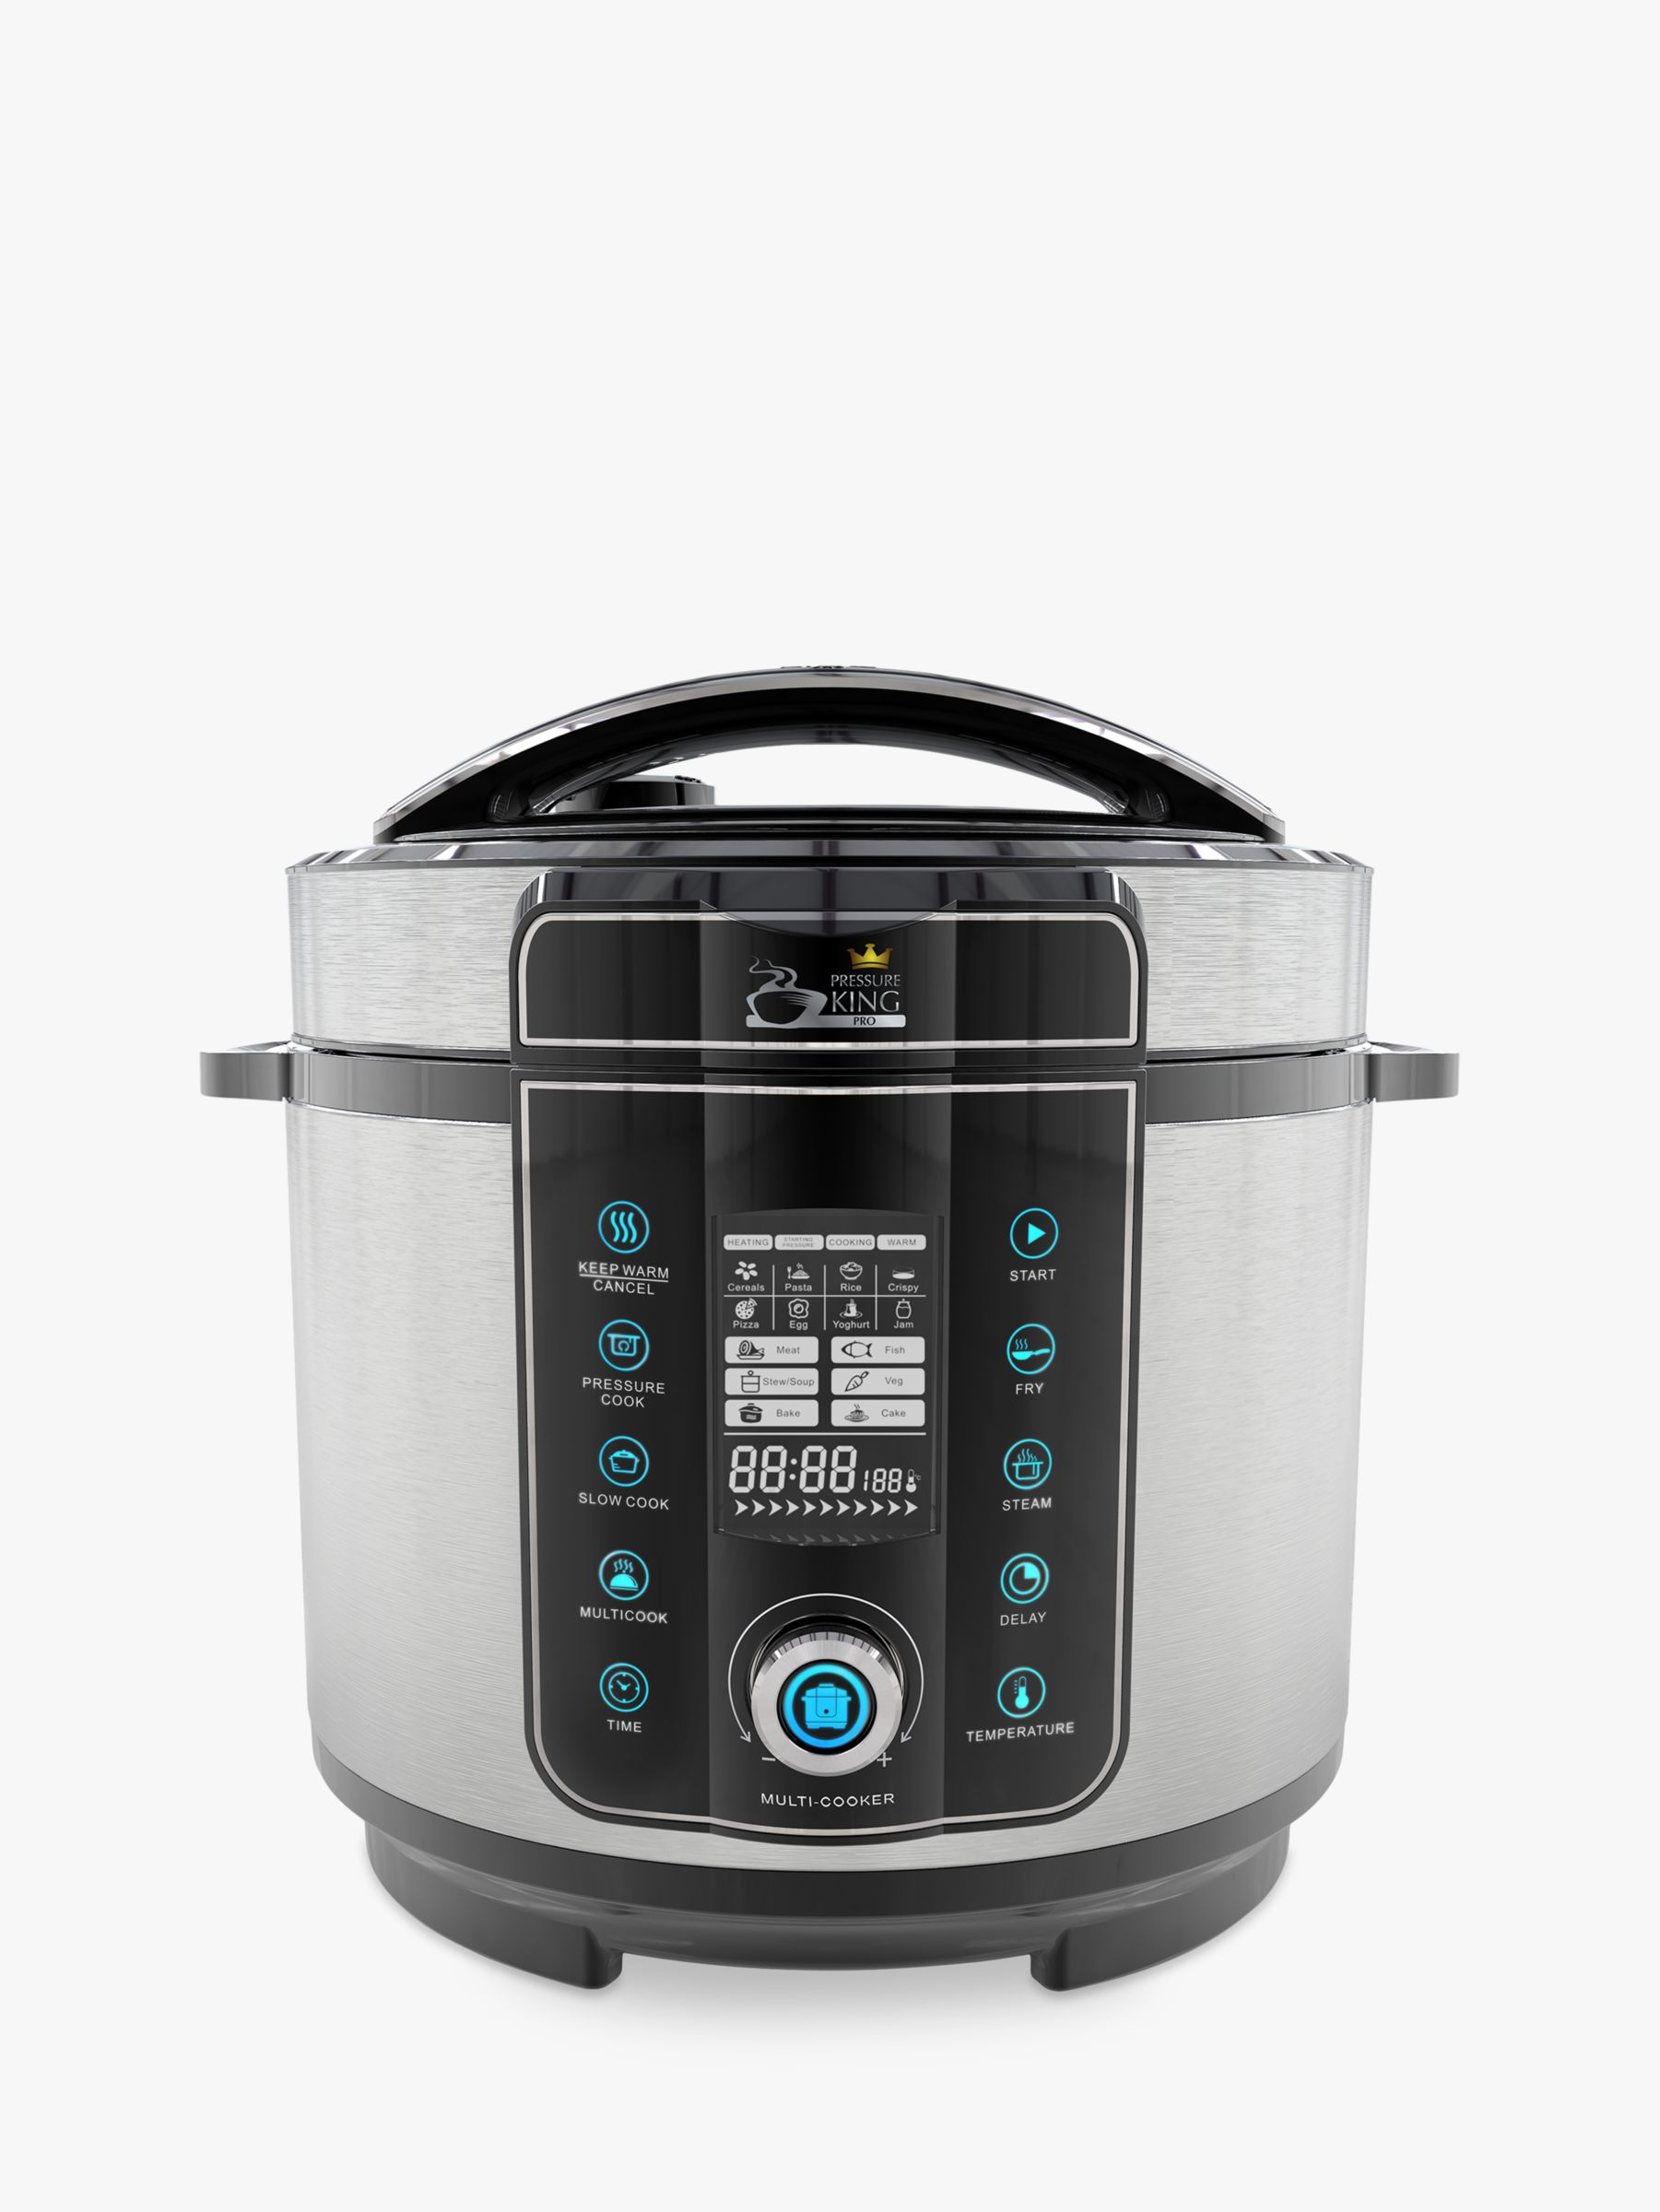 Big W Pressure Cooker Pressure King Pro 20 In 1 6l Digital Multi Cooker Black Chrome At